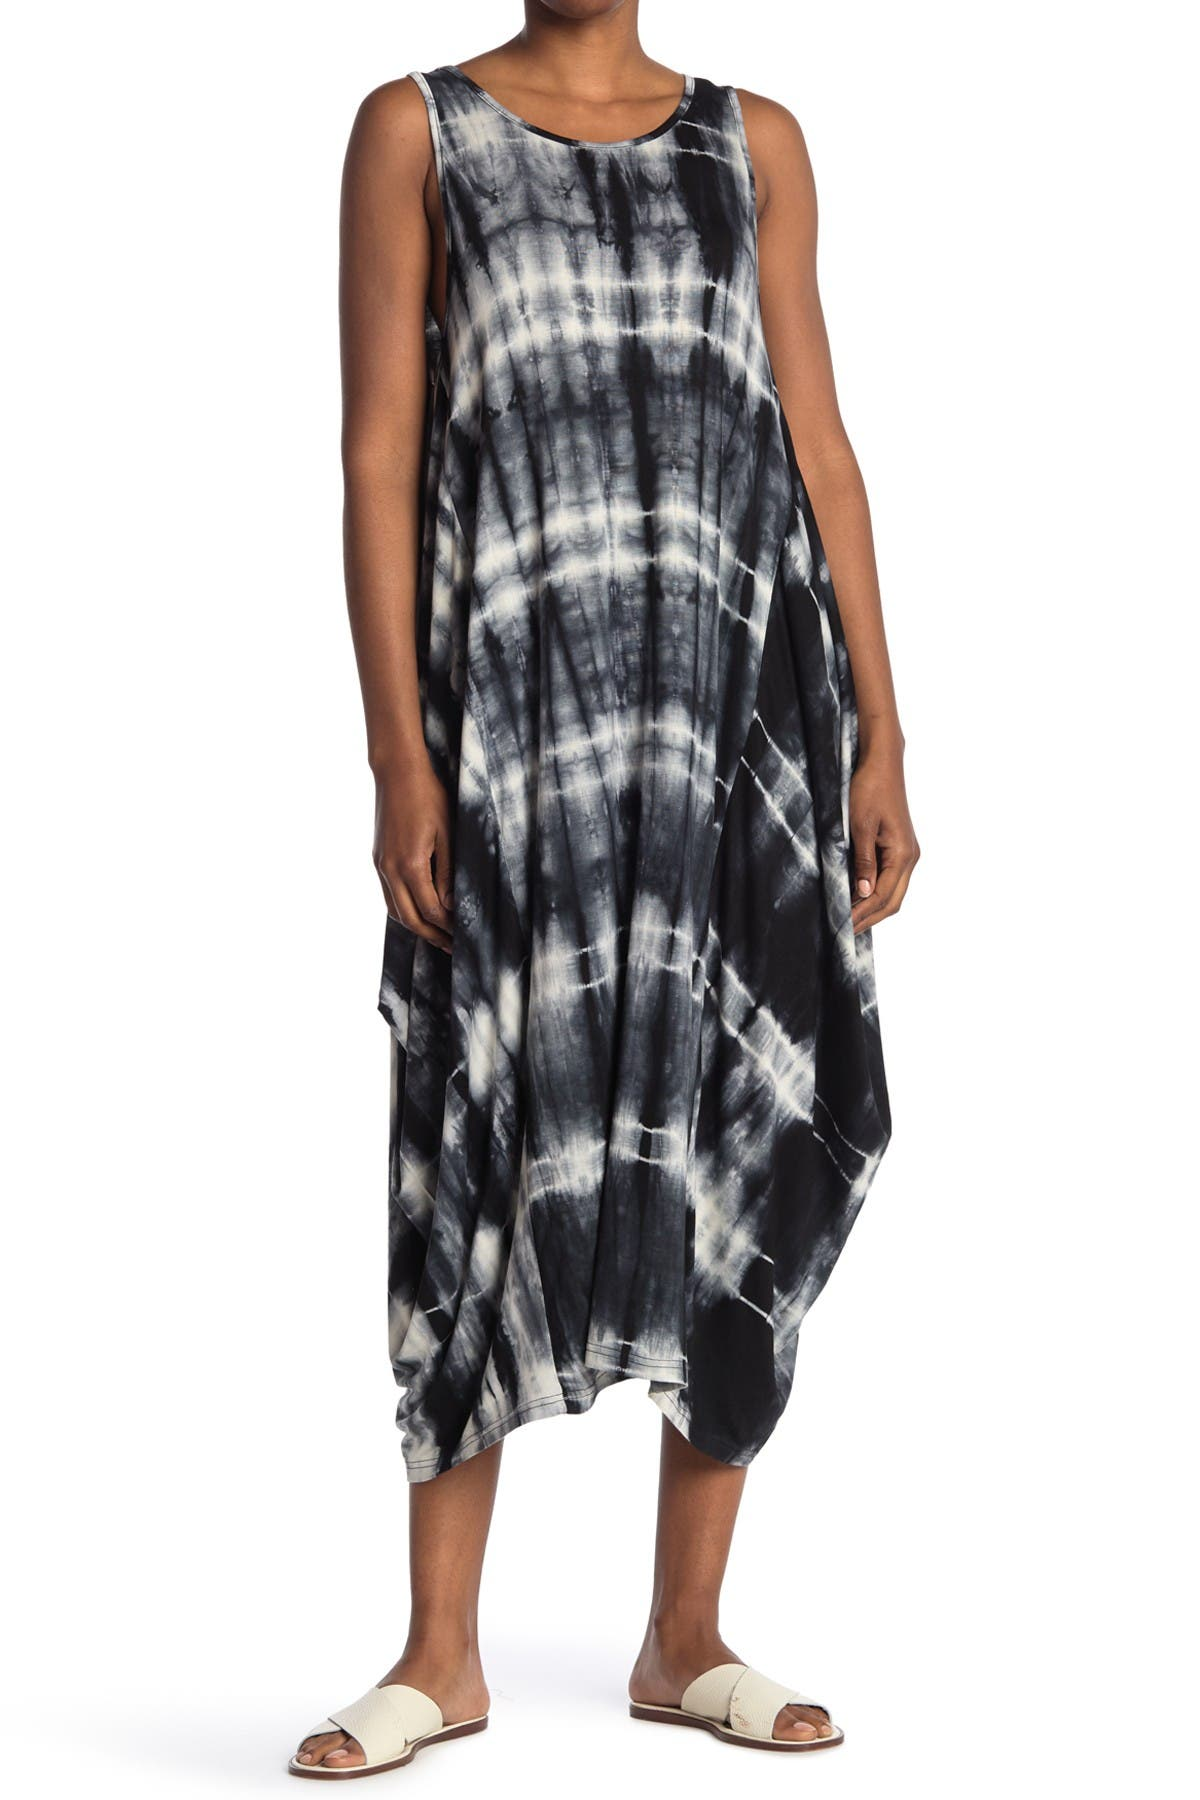 Image of STITCHDROP Draped Tie-Dye Maxi Tank Dress